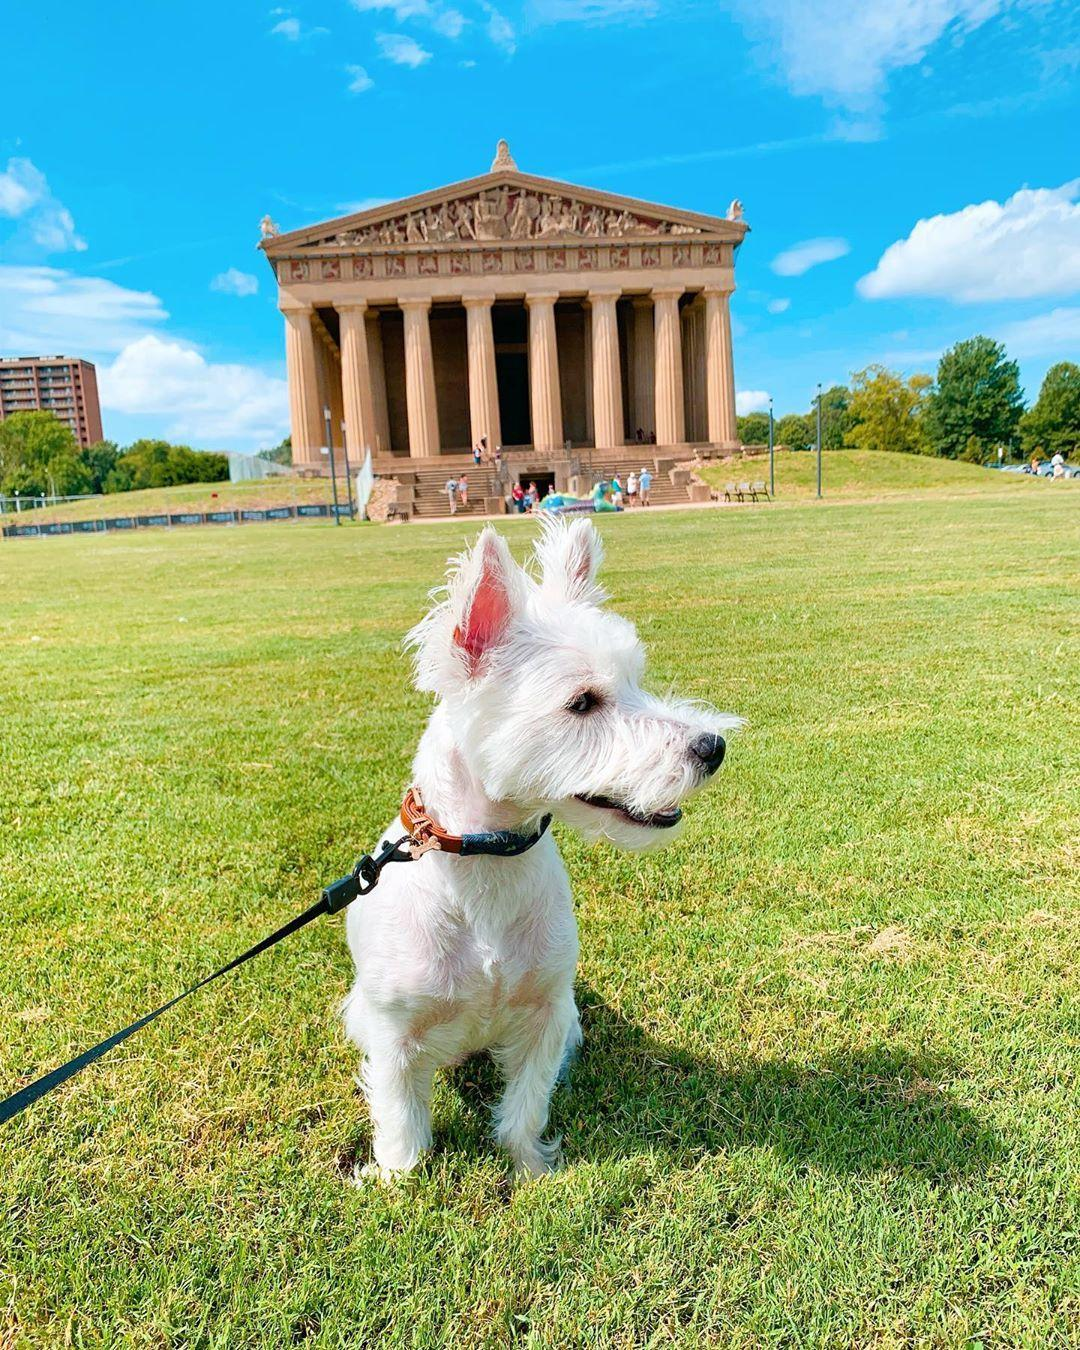 A white dog stands in front of a replica of the Parthenon at Centennial Park in dog-friendly Nashville.